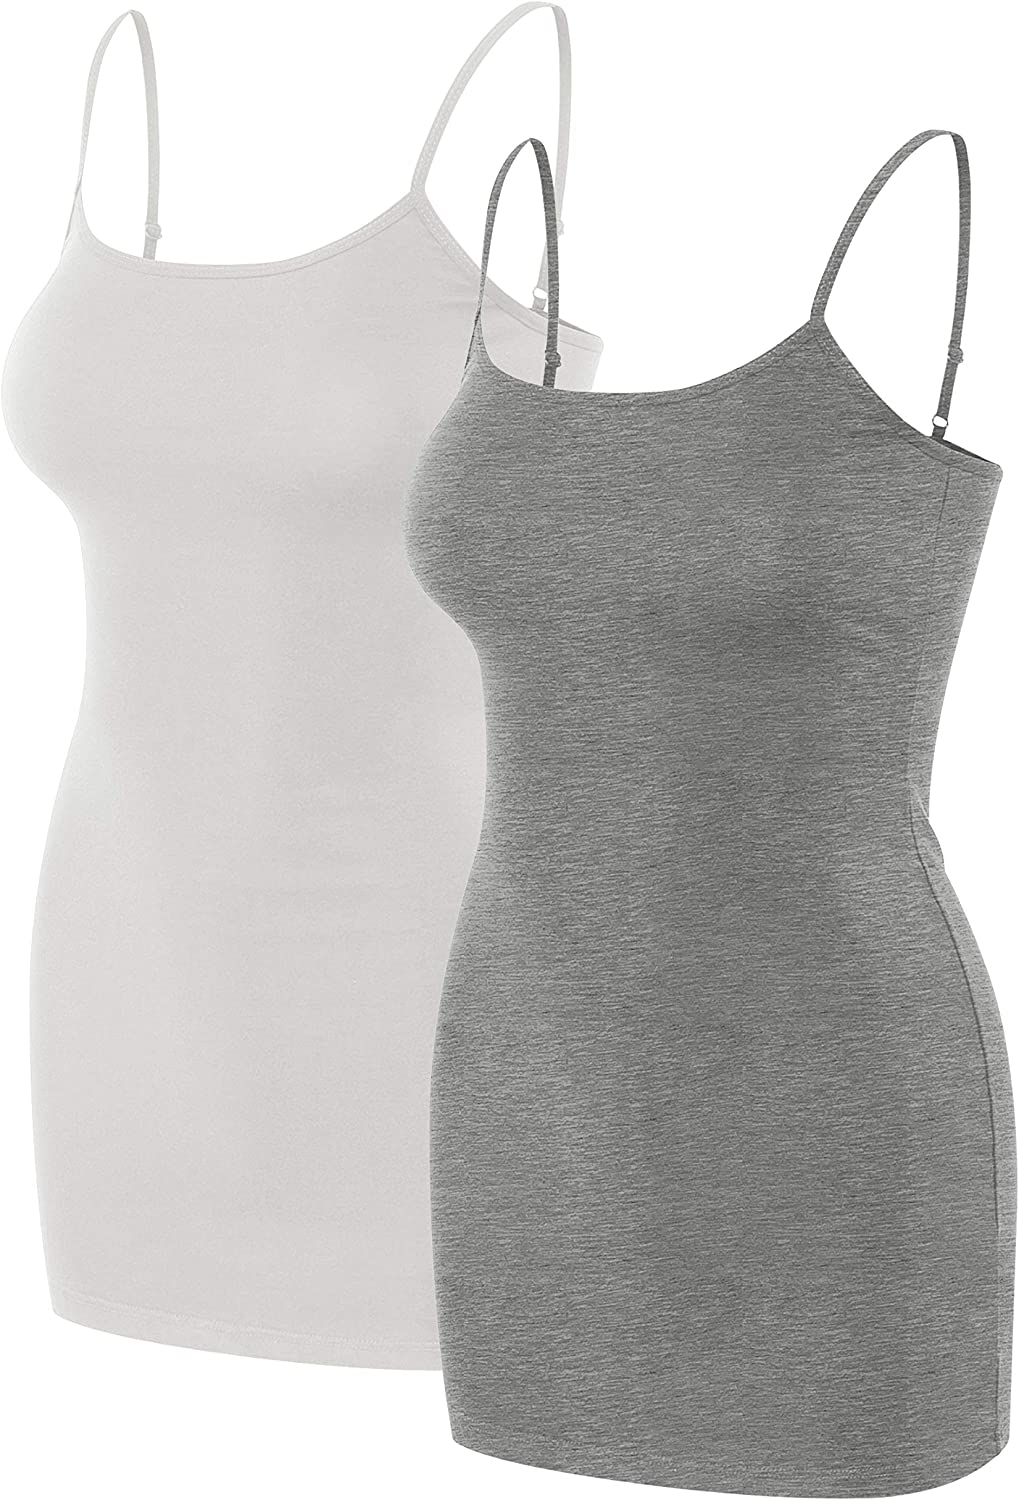 Sixth avenue Multi Pack Womens Basic Long Length Adjustable Spaghetti Strap Cami Tank Top Camisole (S3XL)